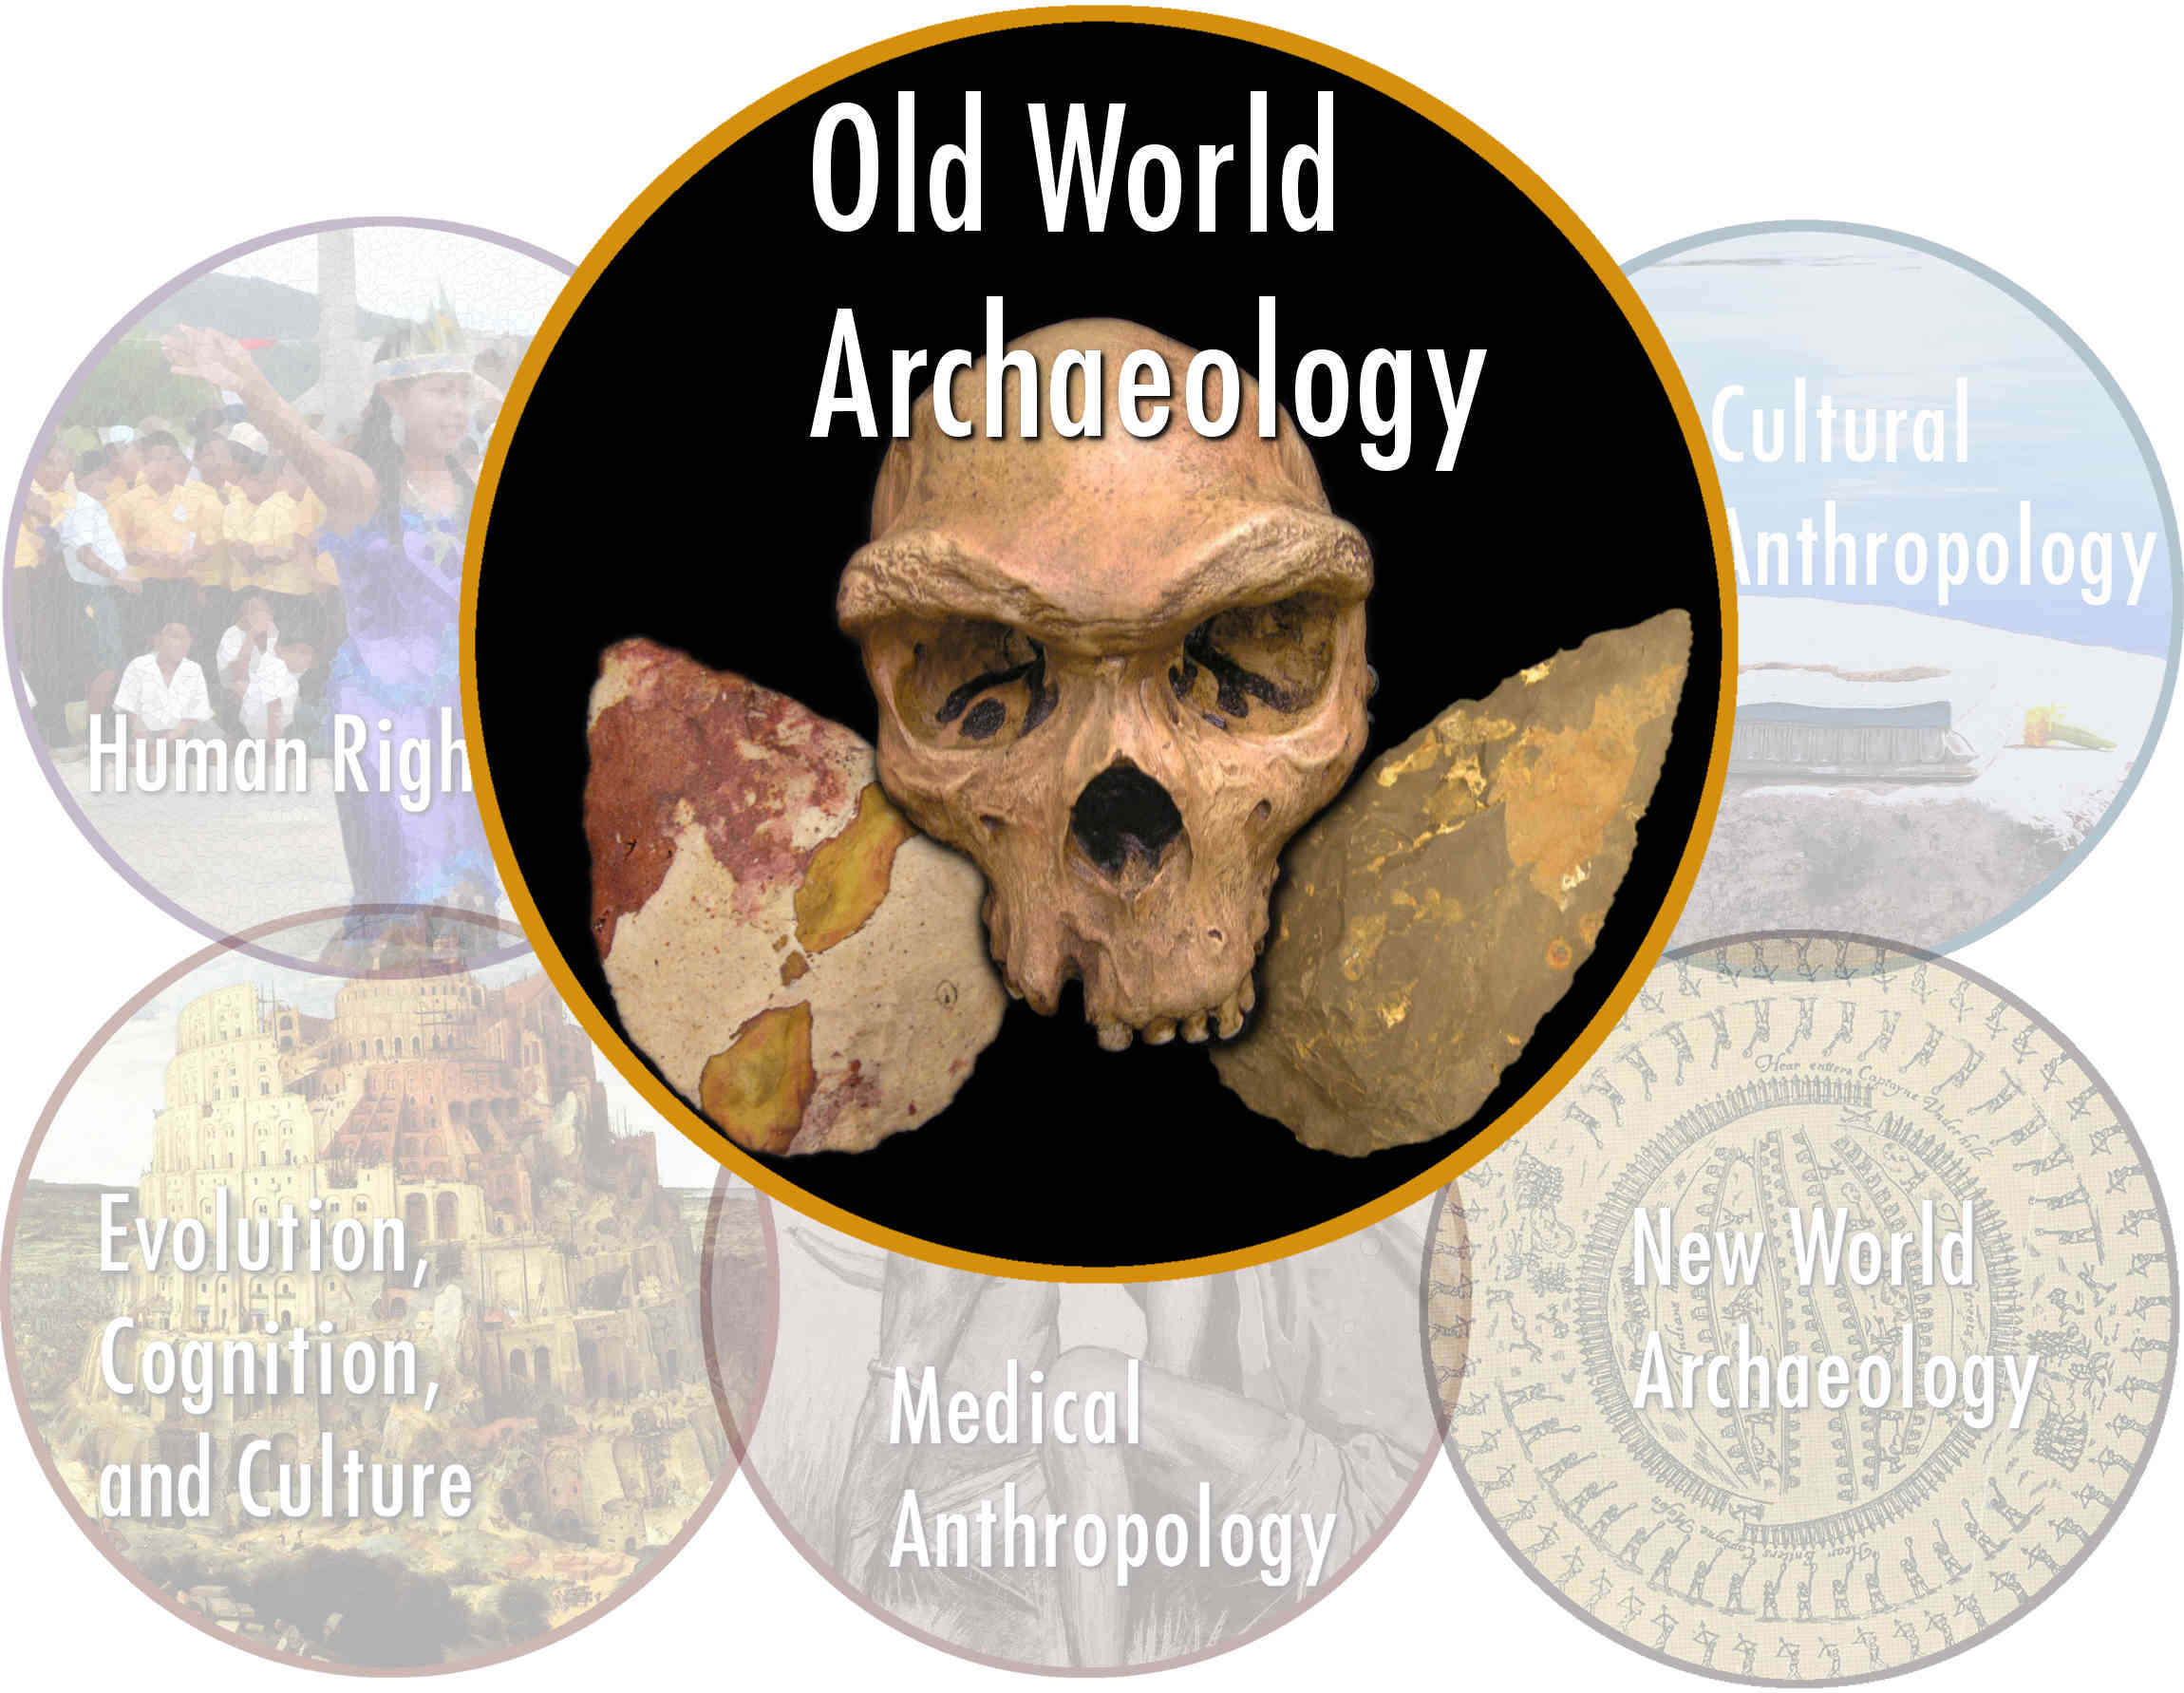 Old world archaeology logo